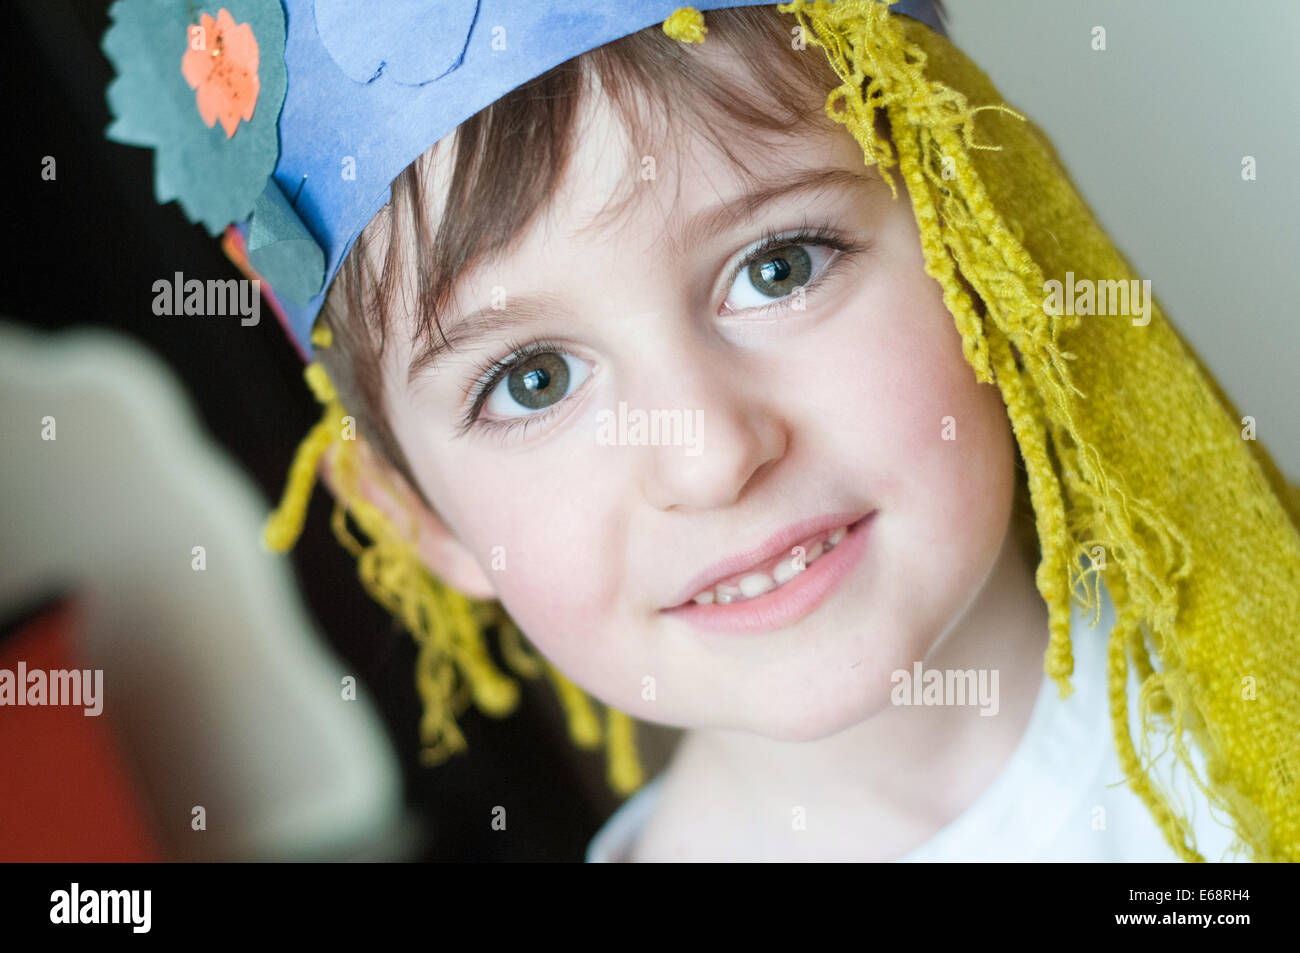 Child disguise - Stock Image